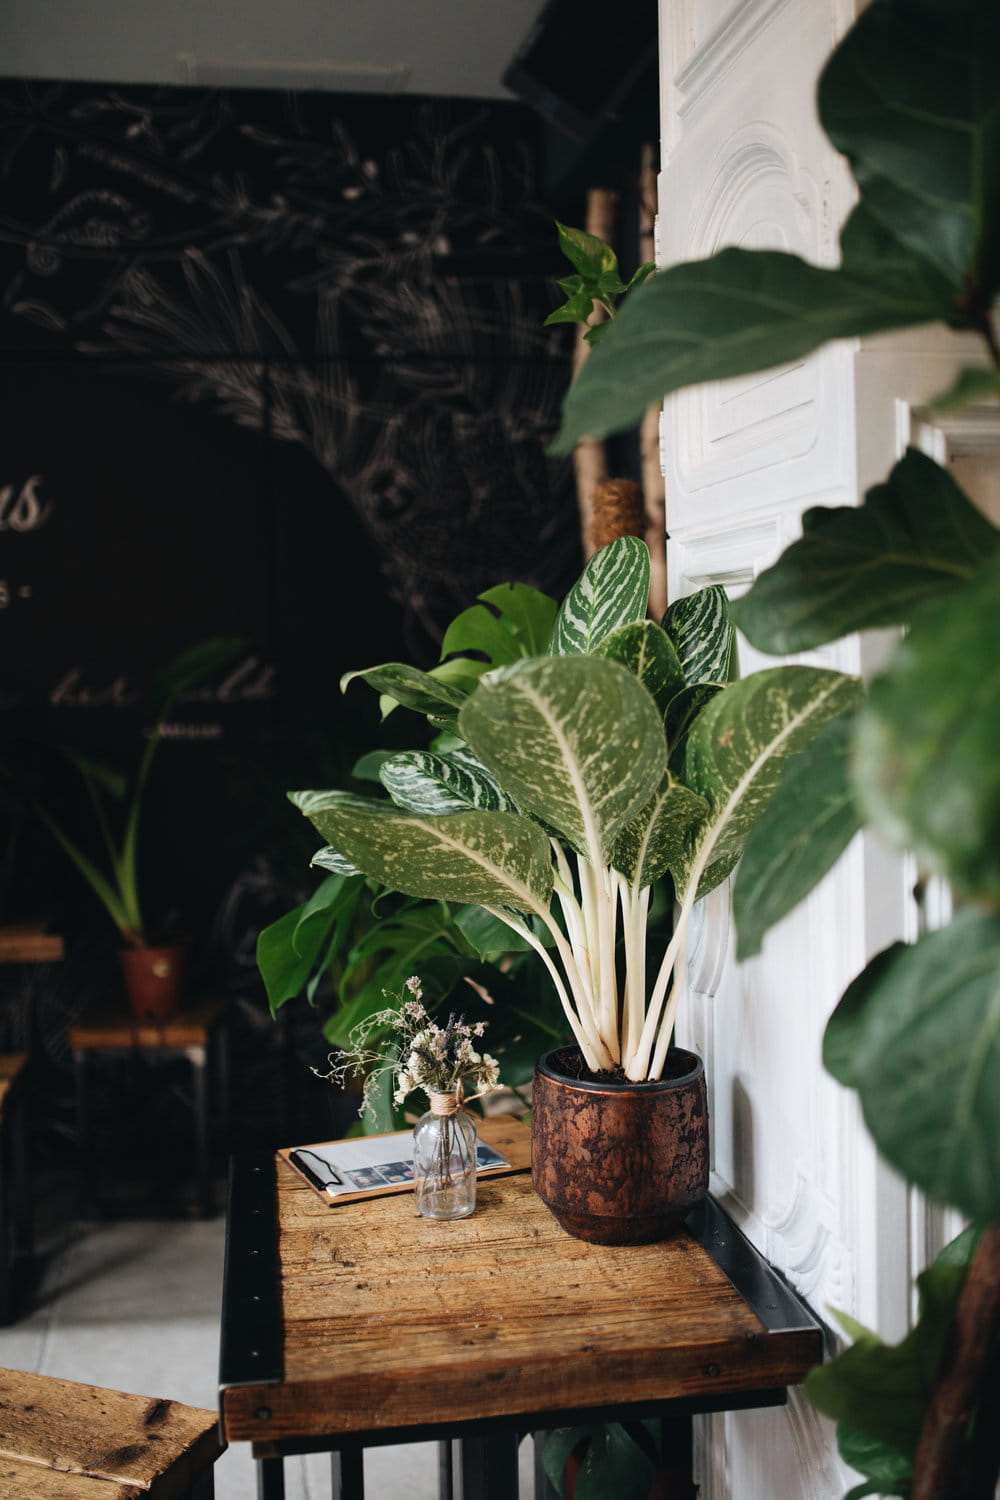 The Greens Coffee and Plants Cafe Interior, Berlin